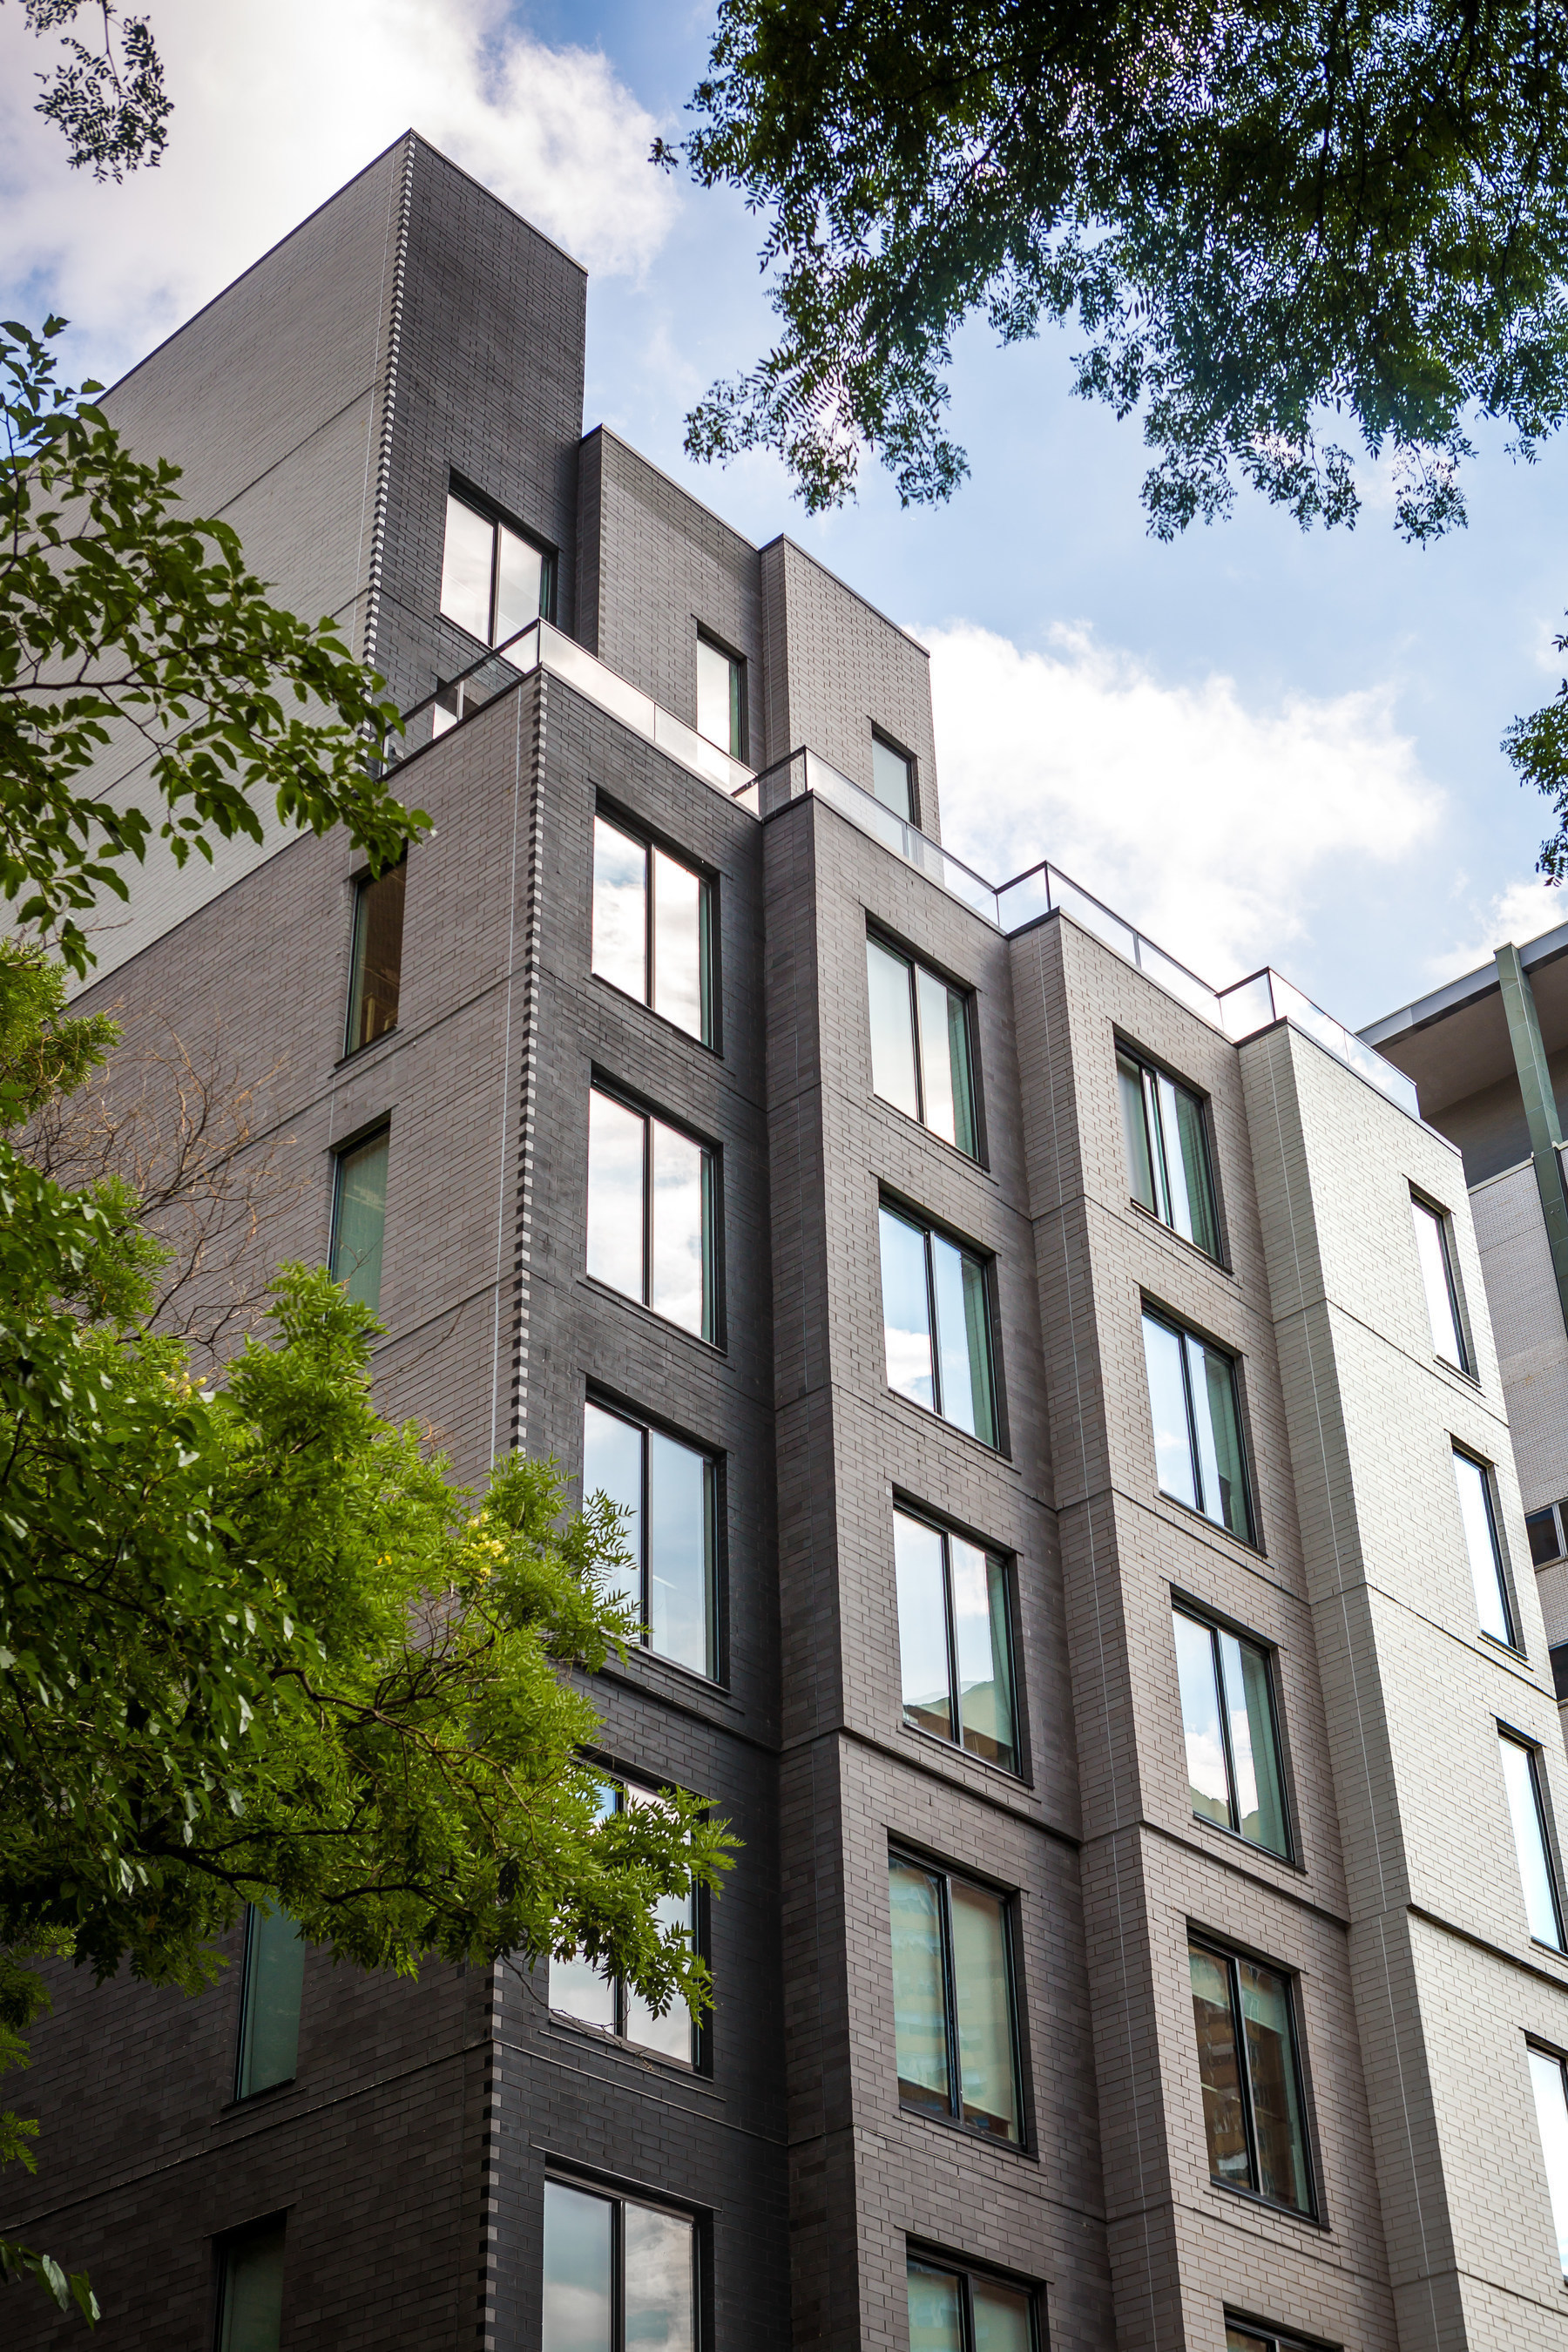 Carmel Place, clad with Glen-Gery Klaycoat brick, receives international recognition.